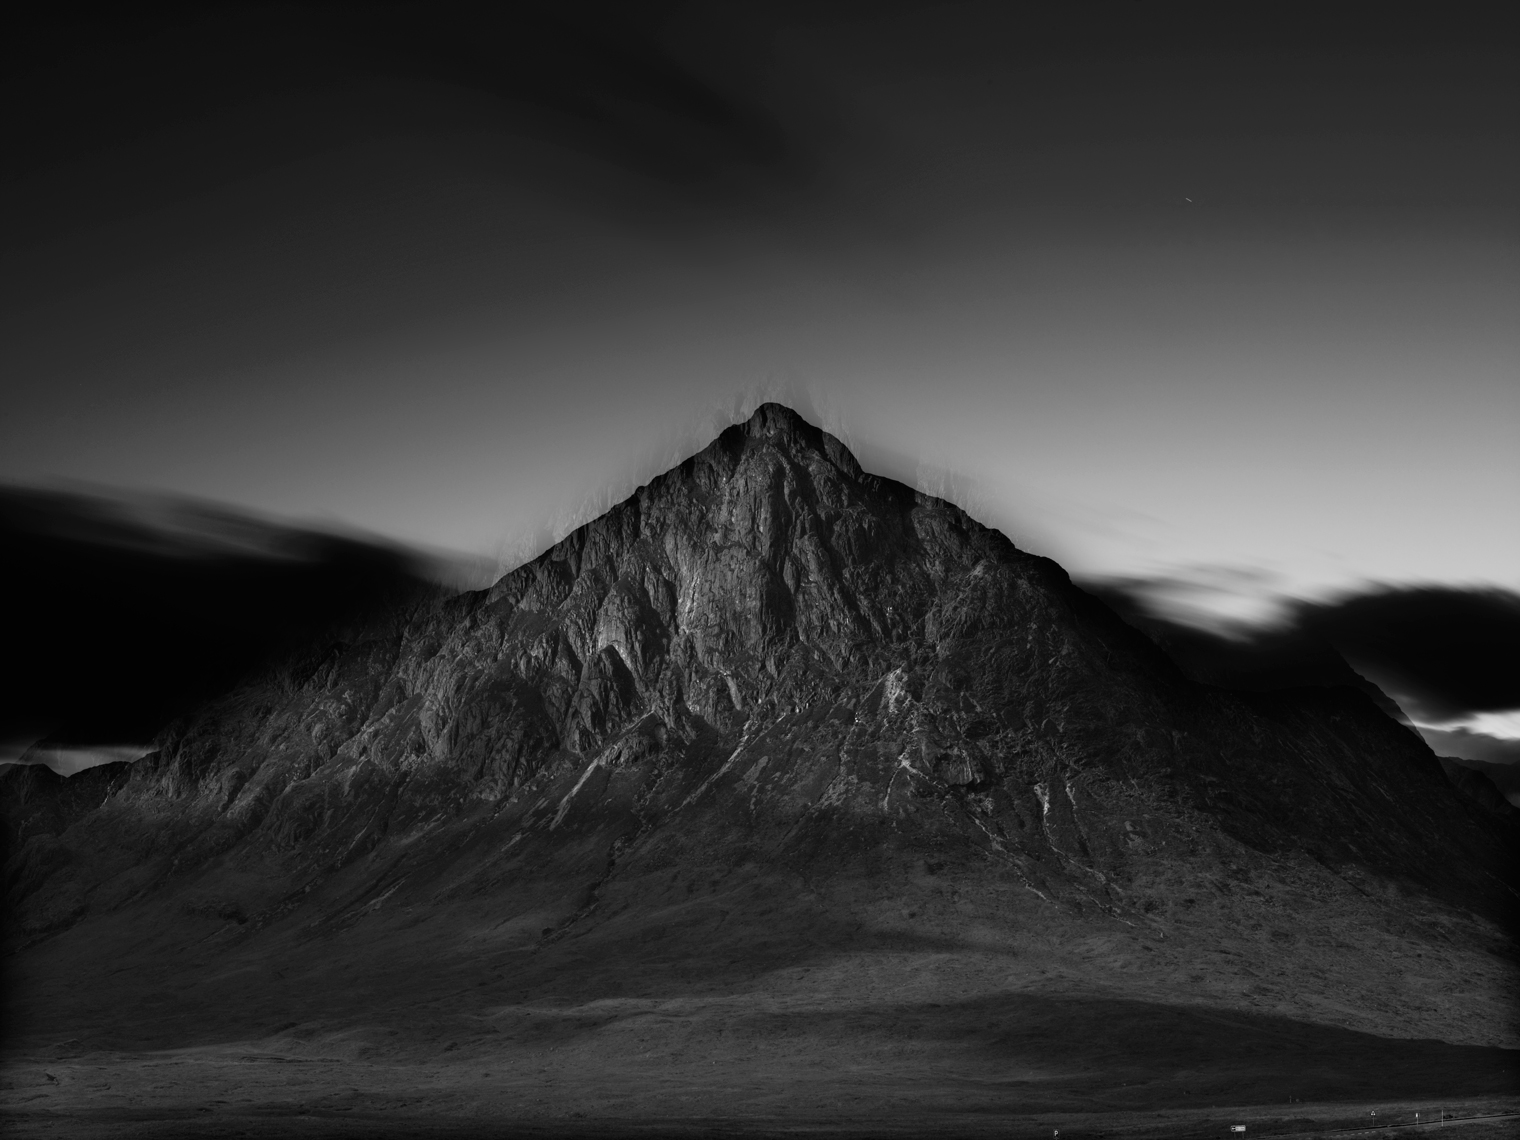 Jon Wyatt Photography - Buachaille Etive Mor at night, near Glencoe, Scotland.  Site of 3 fatalities in an avalanche in 2009.